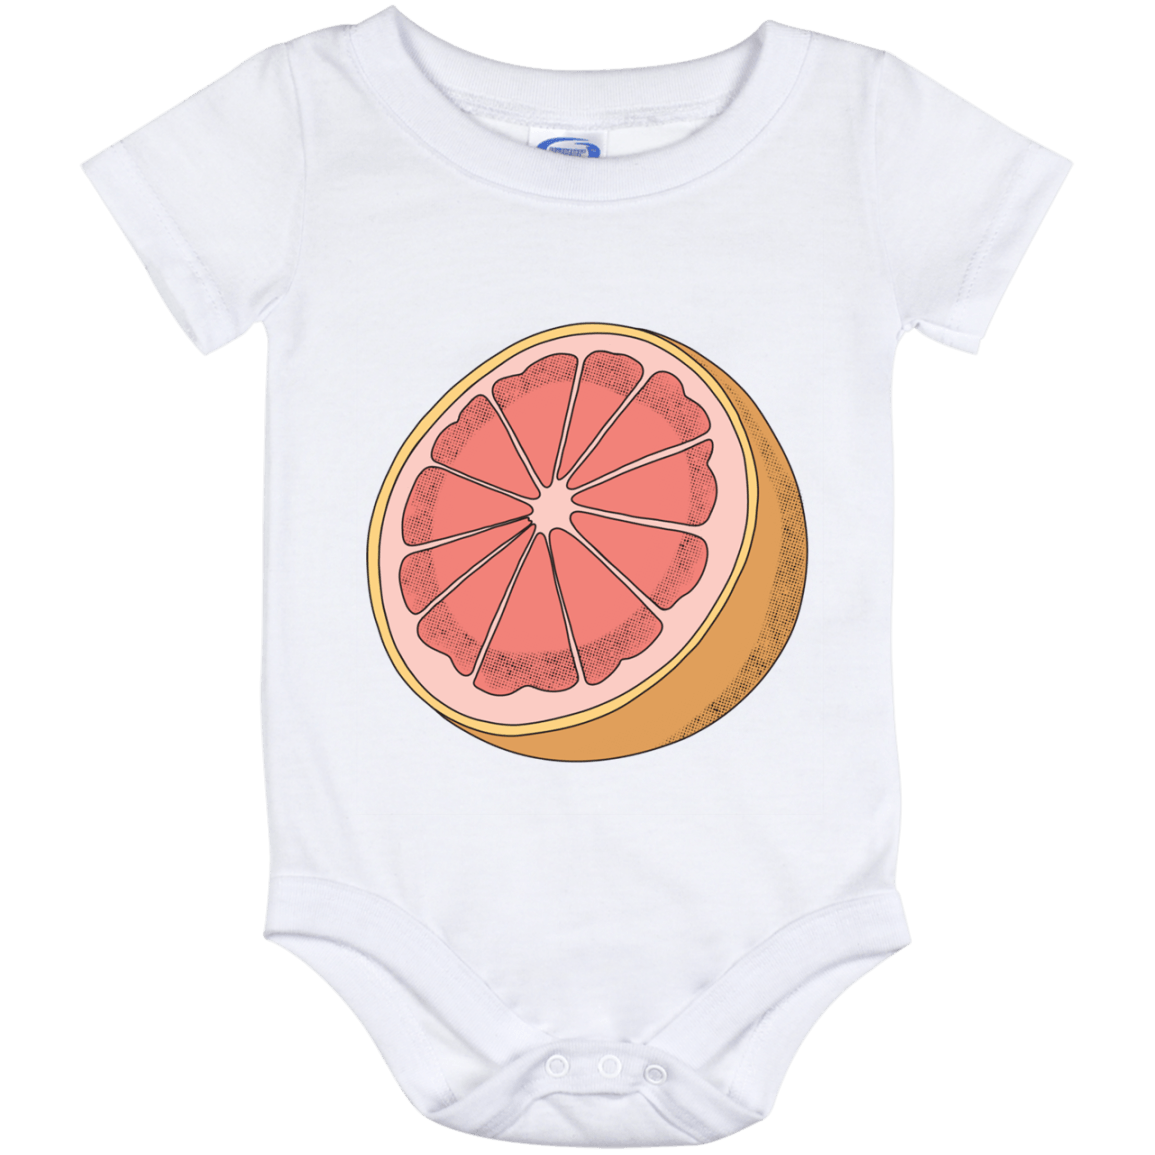 Grapefruit Baby Onesie 12 Month